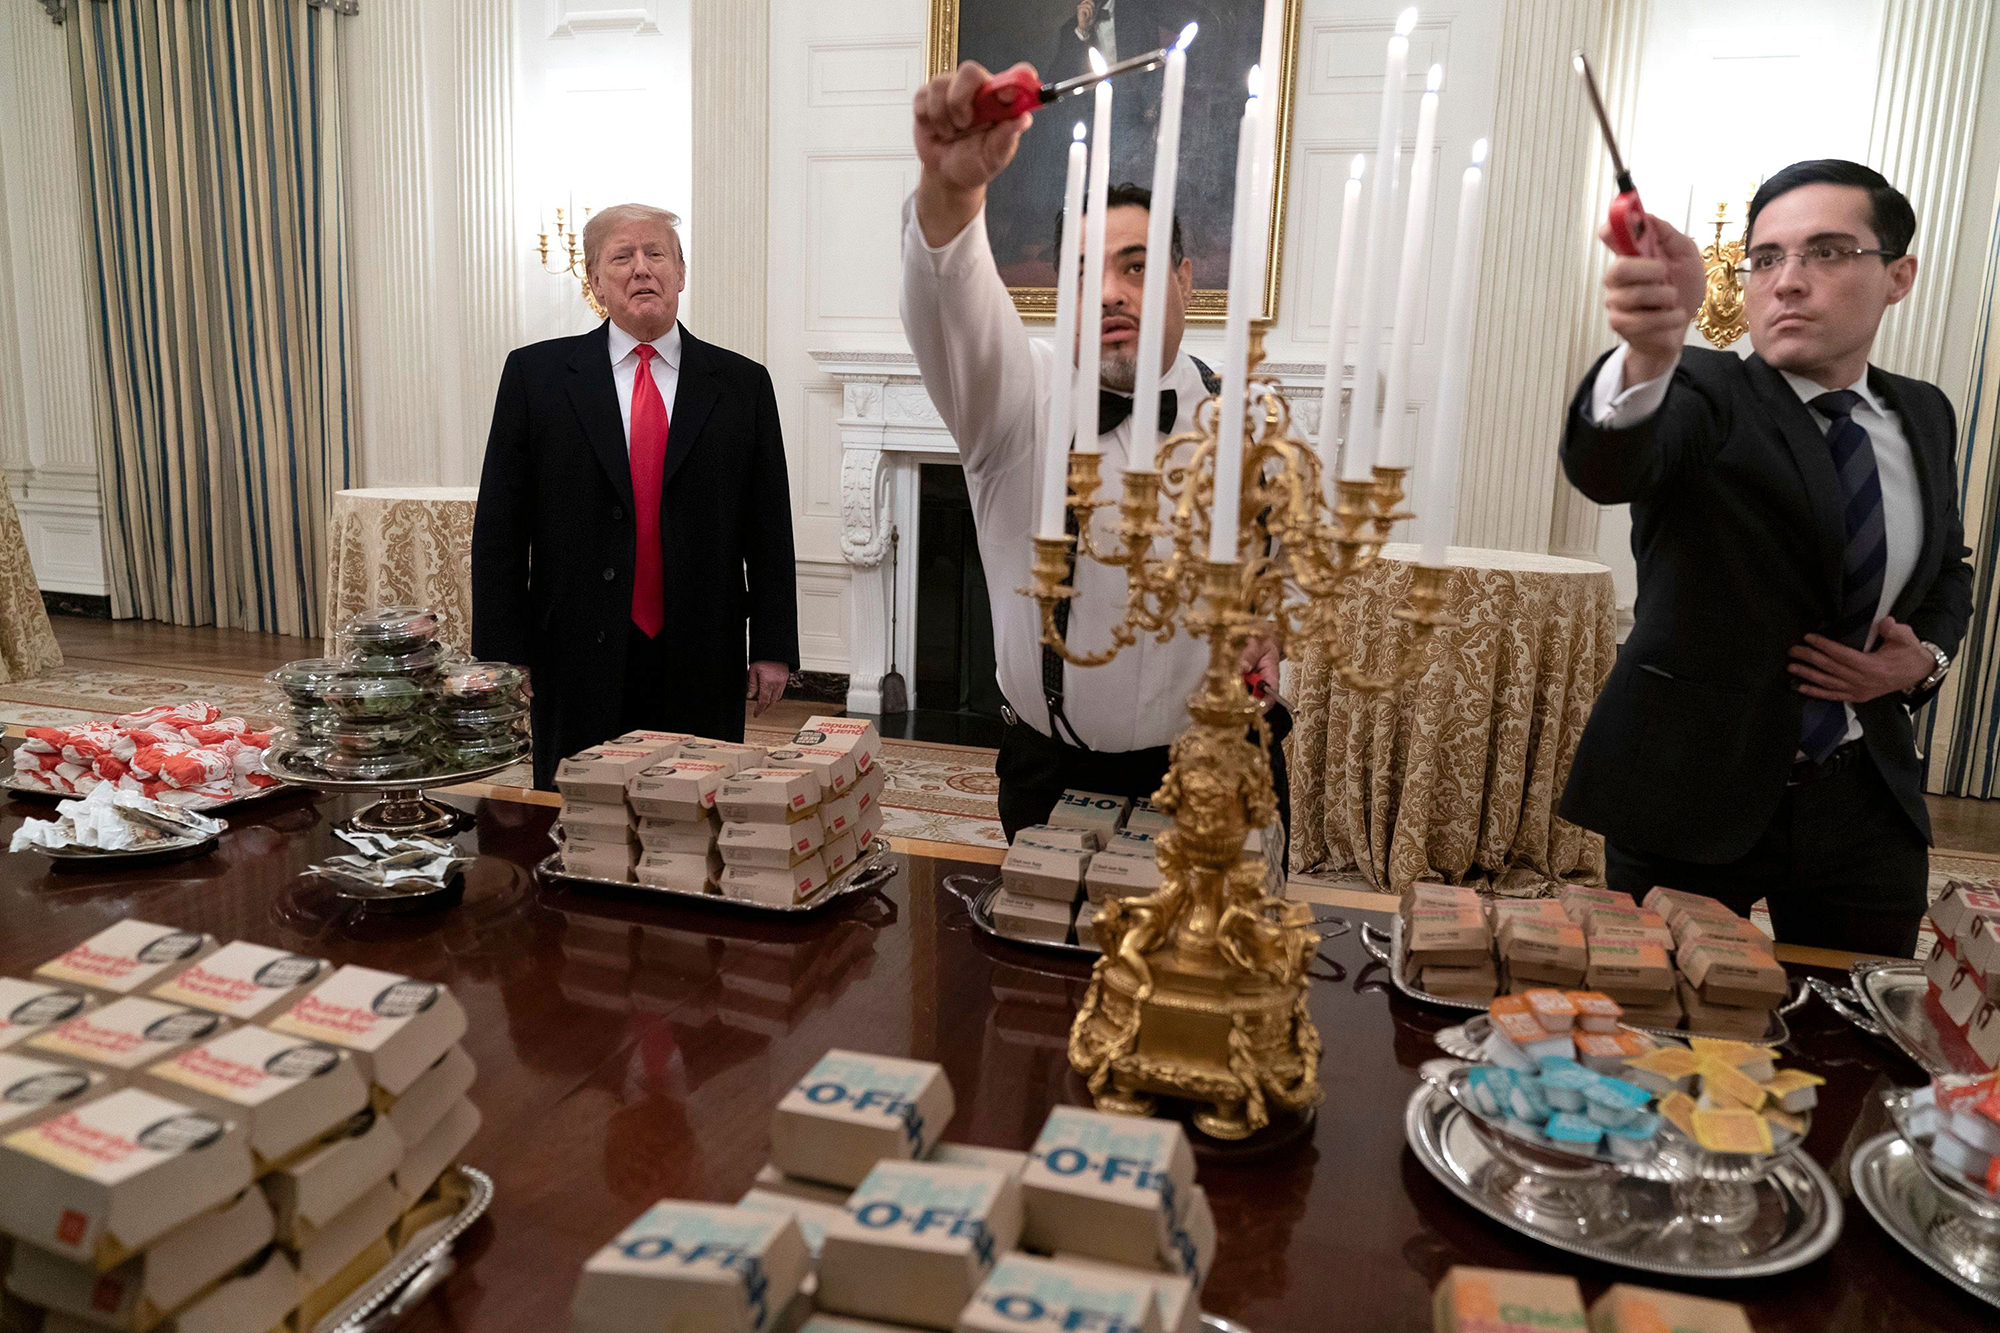 United States President Donald J. Trump presents fast food to be served to the Clemson Tigers during White House visit, Washington, USA - 14 Jan 2019